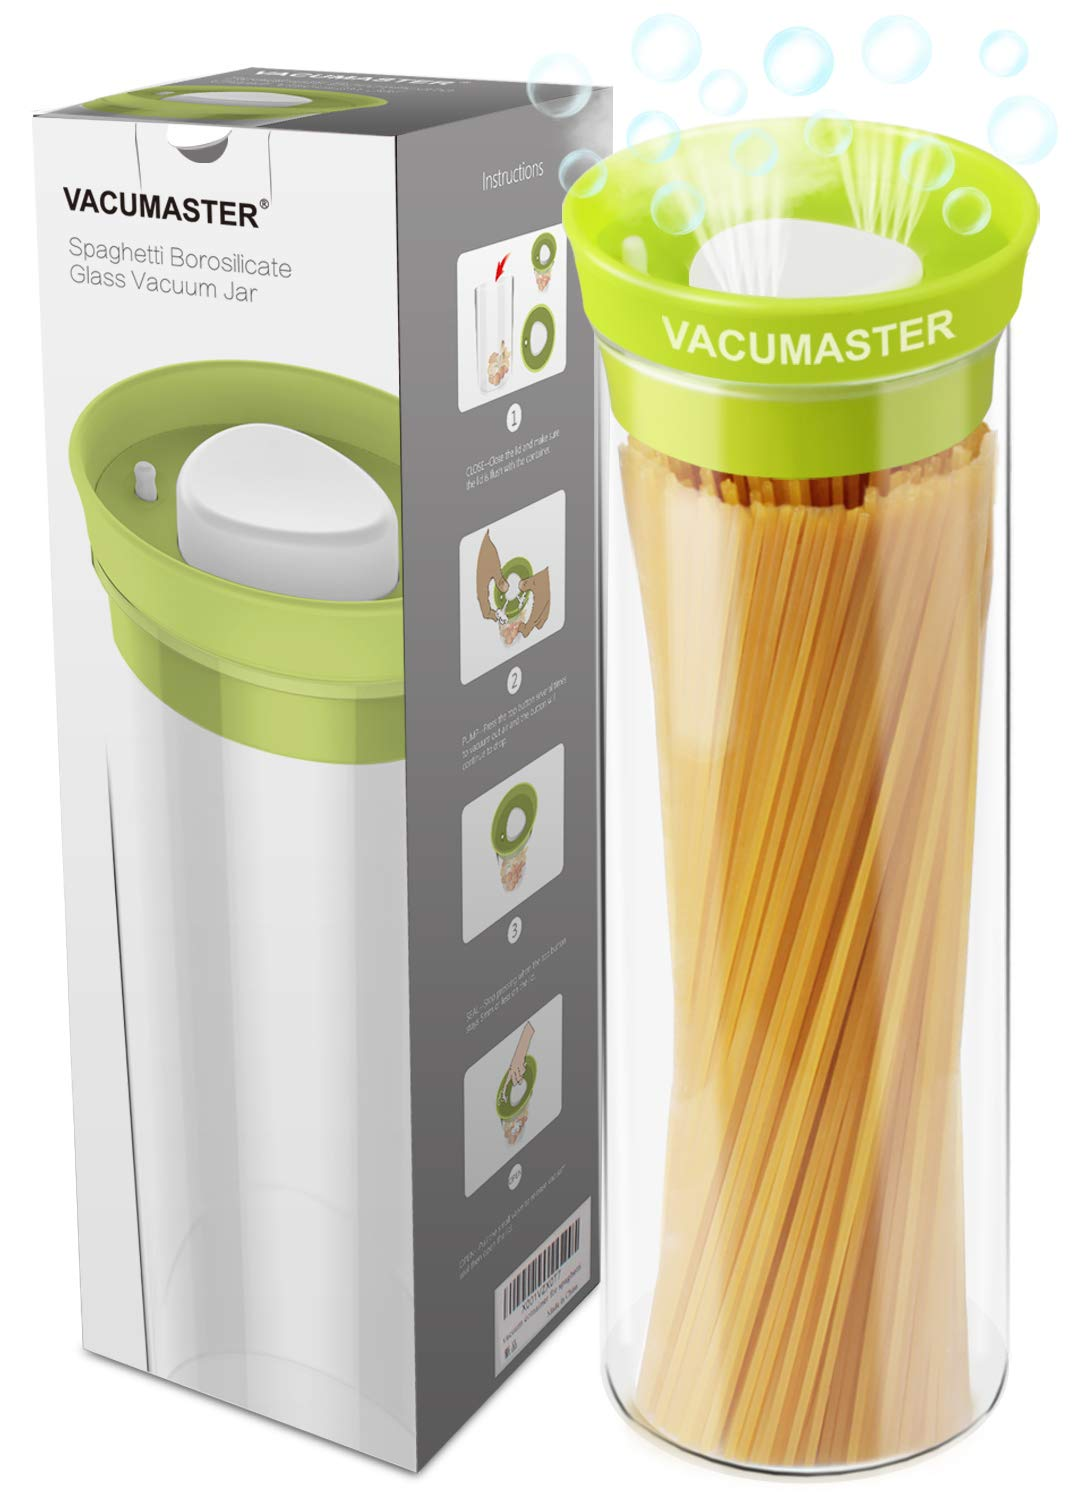 Tall Pasta Glass Container with Vacuum Seal Airtight Lid - Vacumaster Long  Food Storage Container For Spaghetti Linguine Capellini Noodle BPA Free